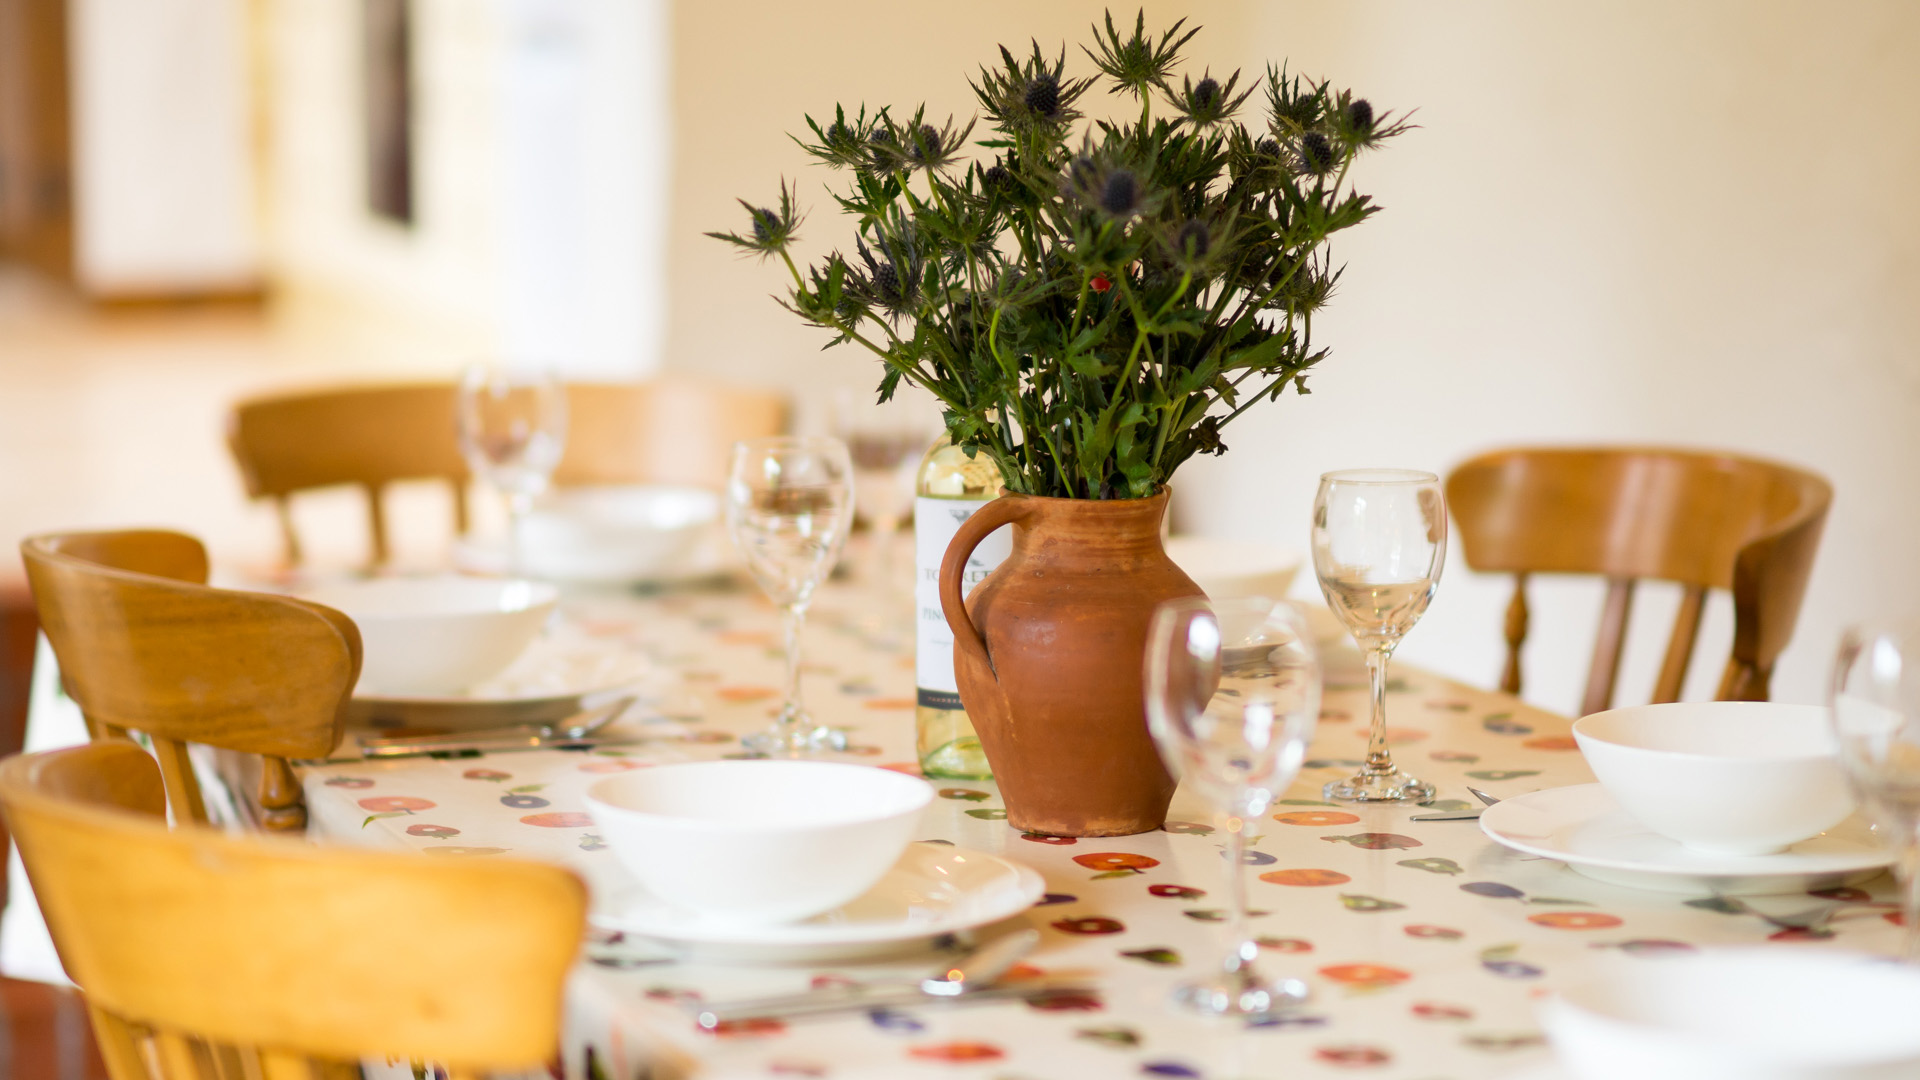 The Byre table and flowers